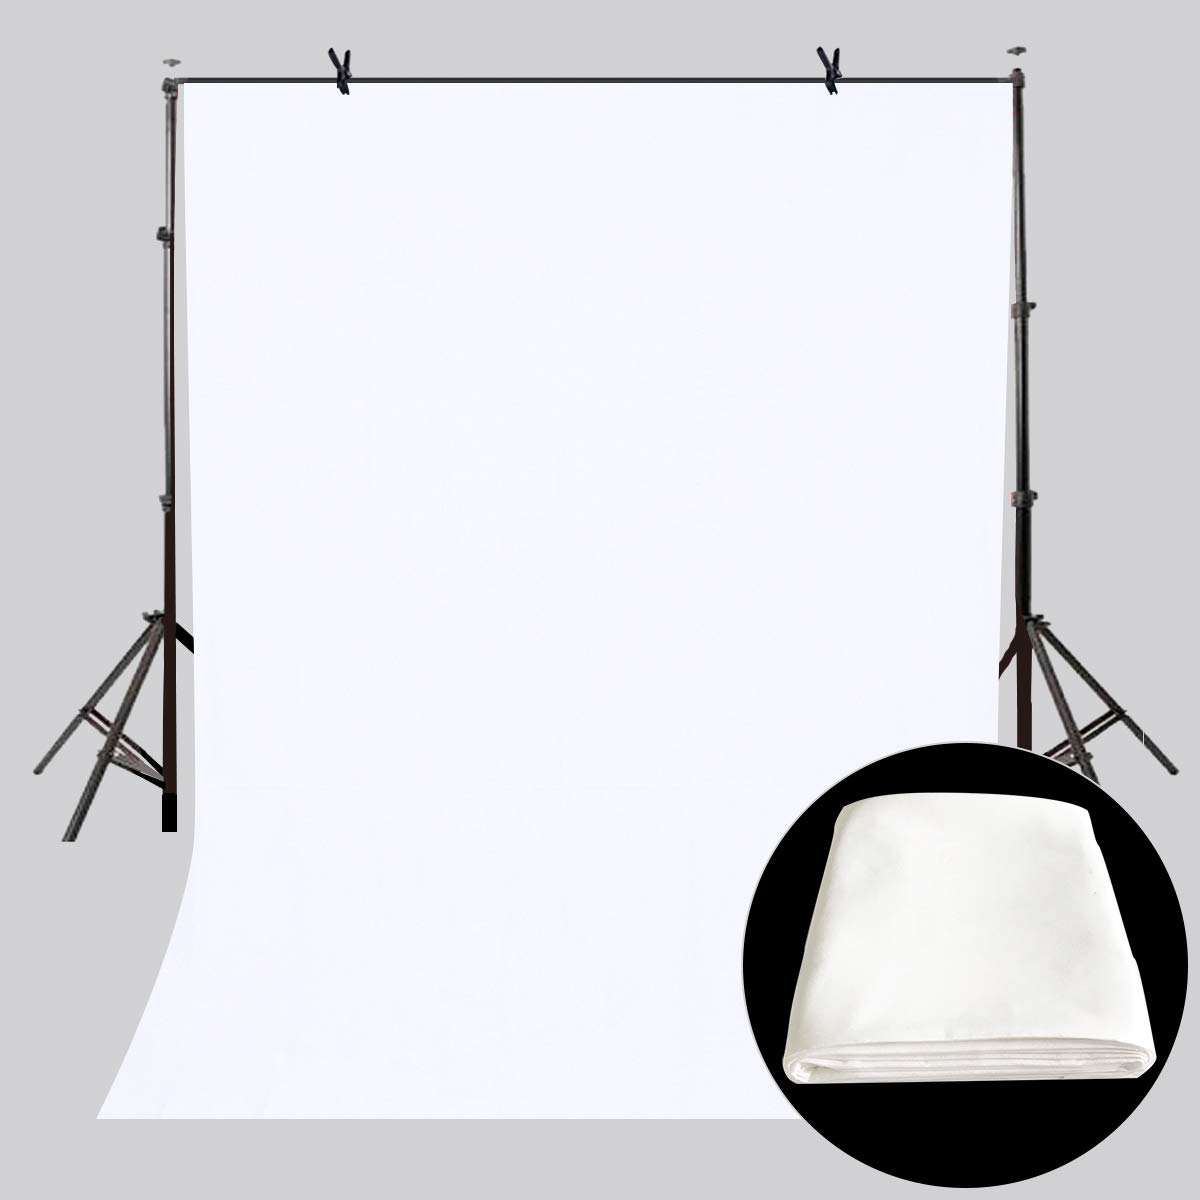 LYLYCTY 5x7ft Backdrop White Screen Key Soft Pure White Studio Background ID Photo Photography Backdrop Photo Backdrops Customized Studio Photography Backdrop Background Studio Props LY164 by LYLYCTY